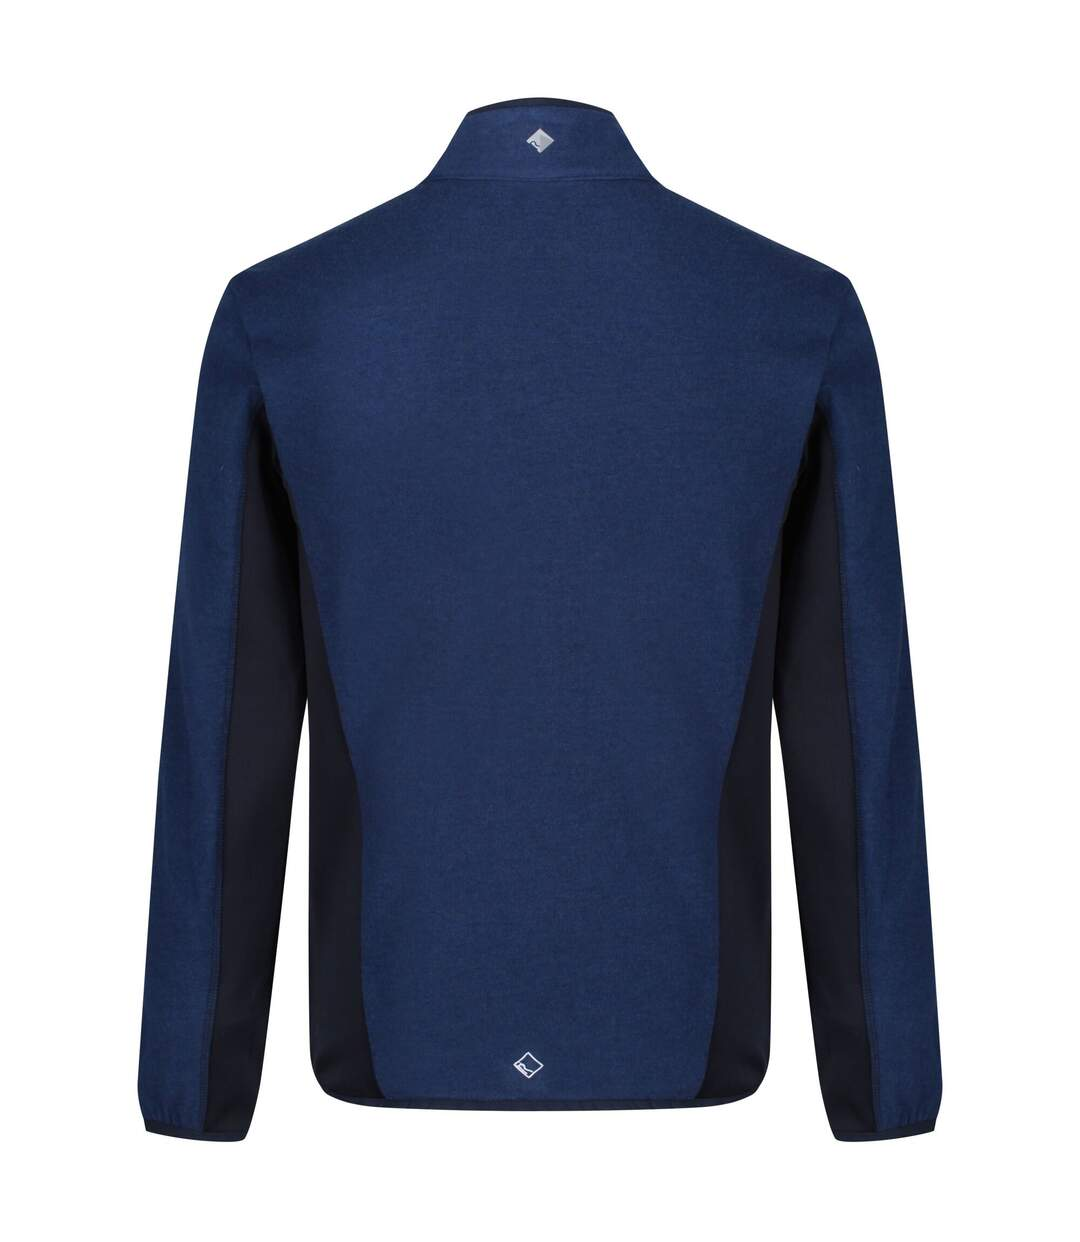 Regatta Mens Kestor Knit Effect Fleece (Prussian Blue/Navy) - UTRG4472